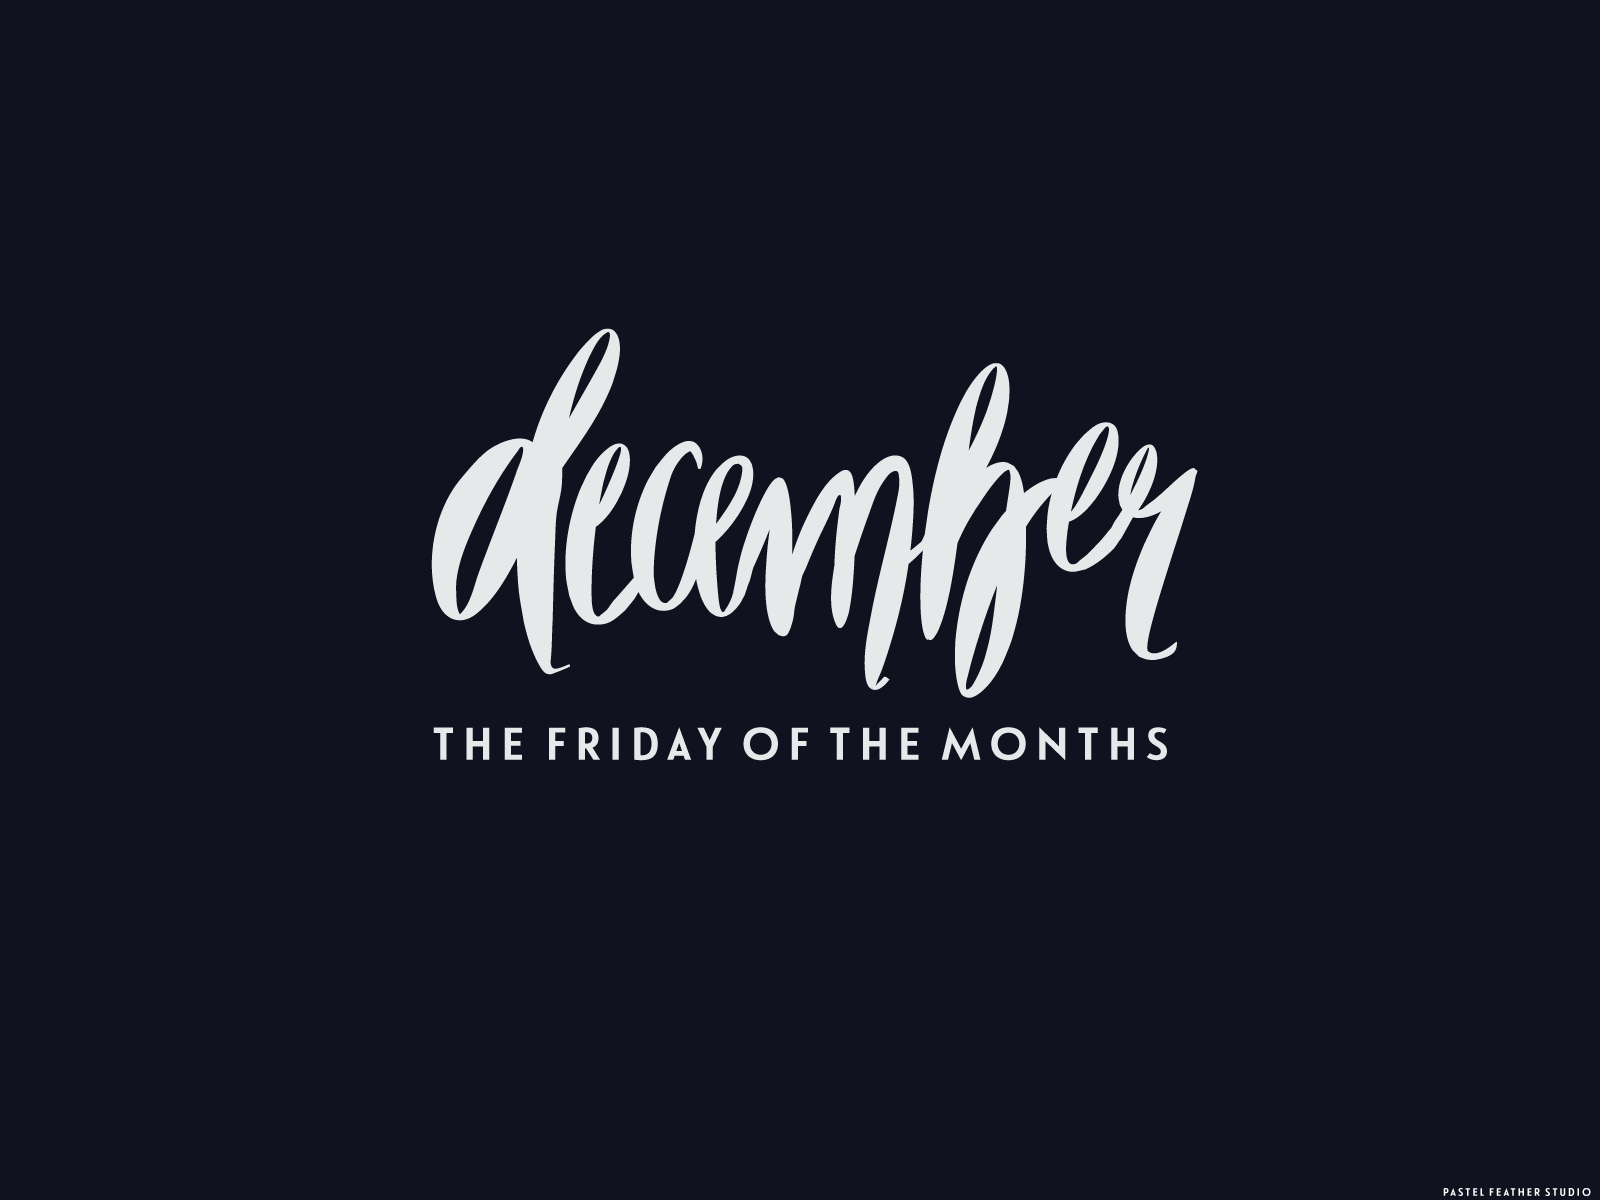 free december wallpaper for pc | p△stel feather studio